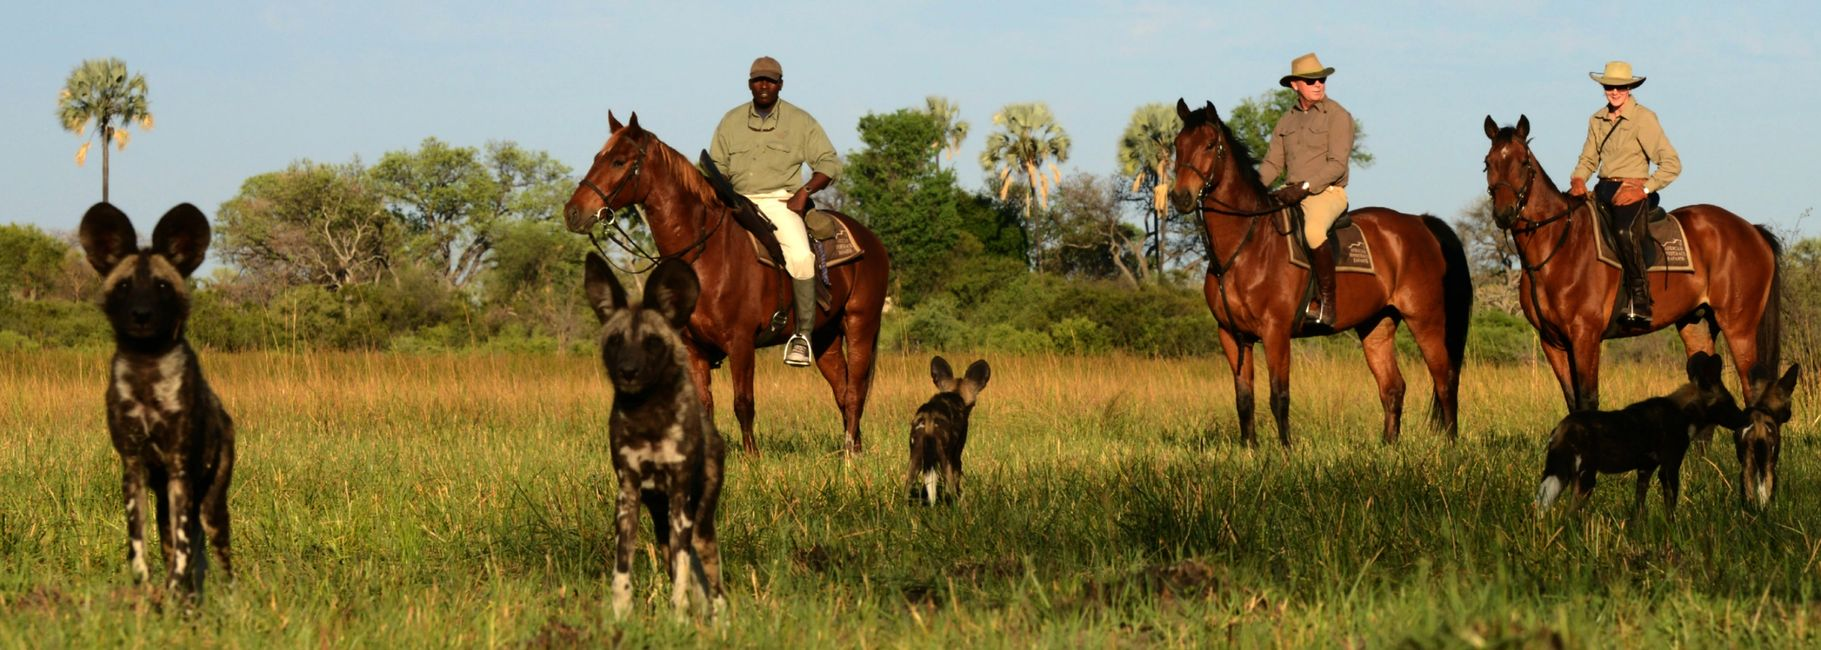 Horseback Safaris in the Okavango Delta, Botswana, Africa